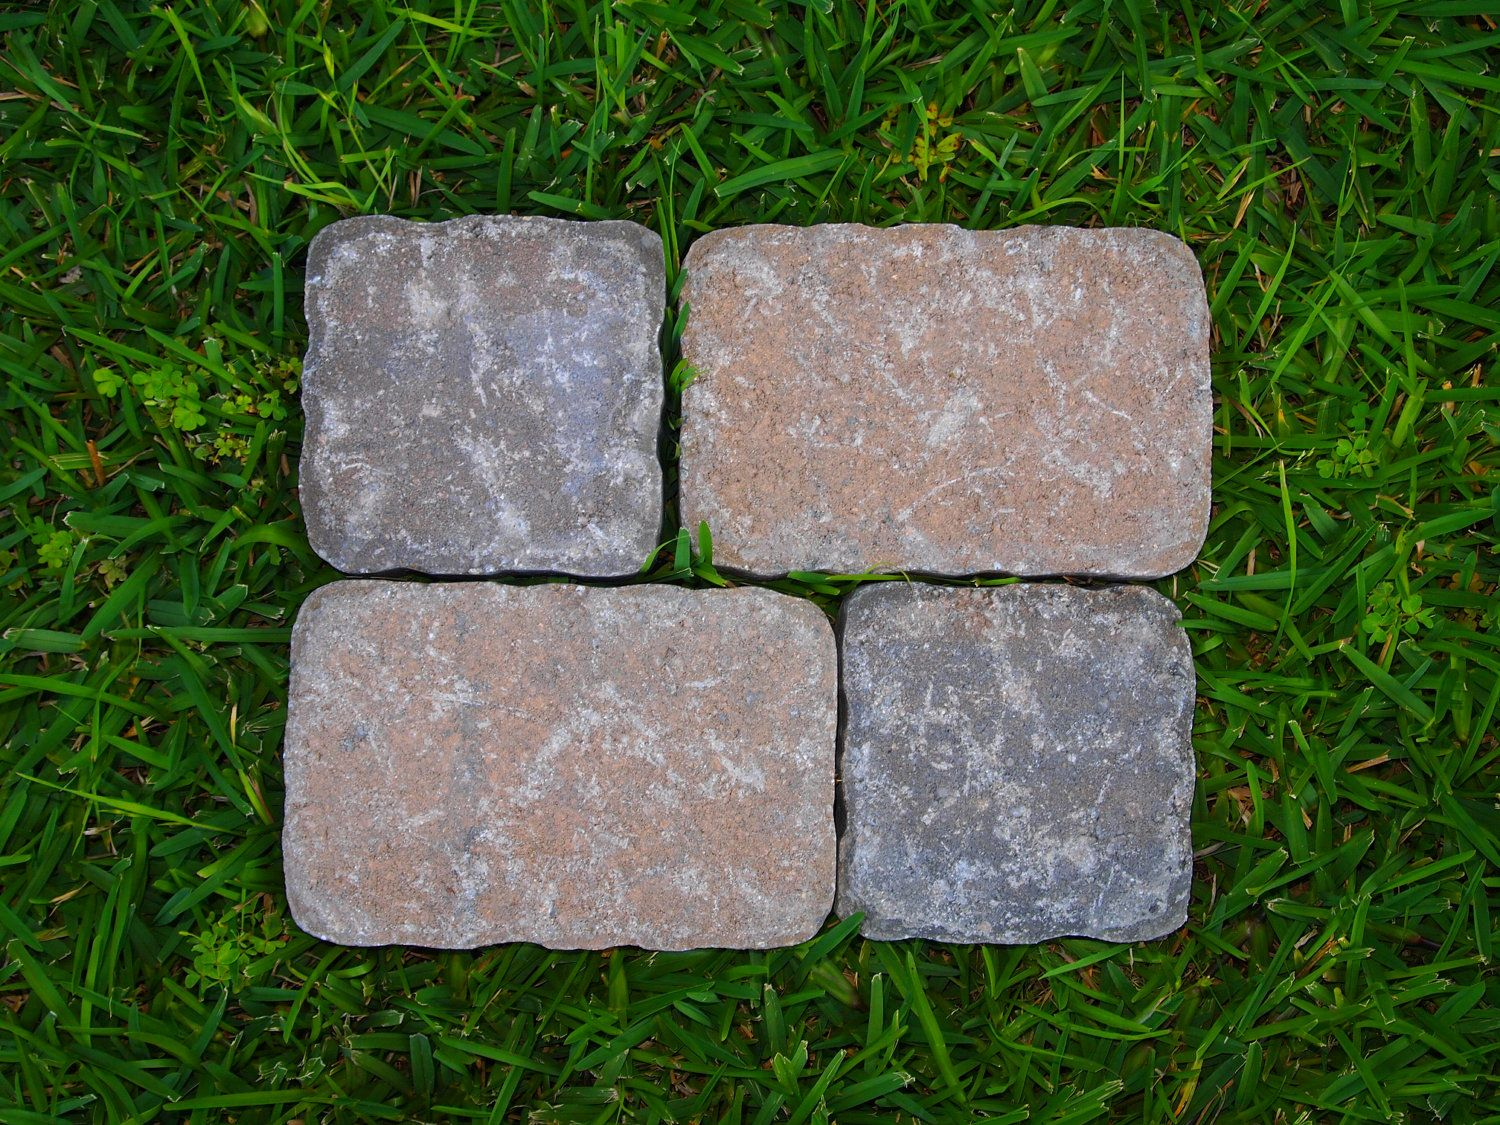 4 New Stepping Stone Or Paver Stone Molds Moulds Concrete Cement For Your  Patio Or Walkway